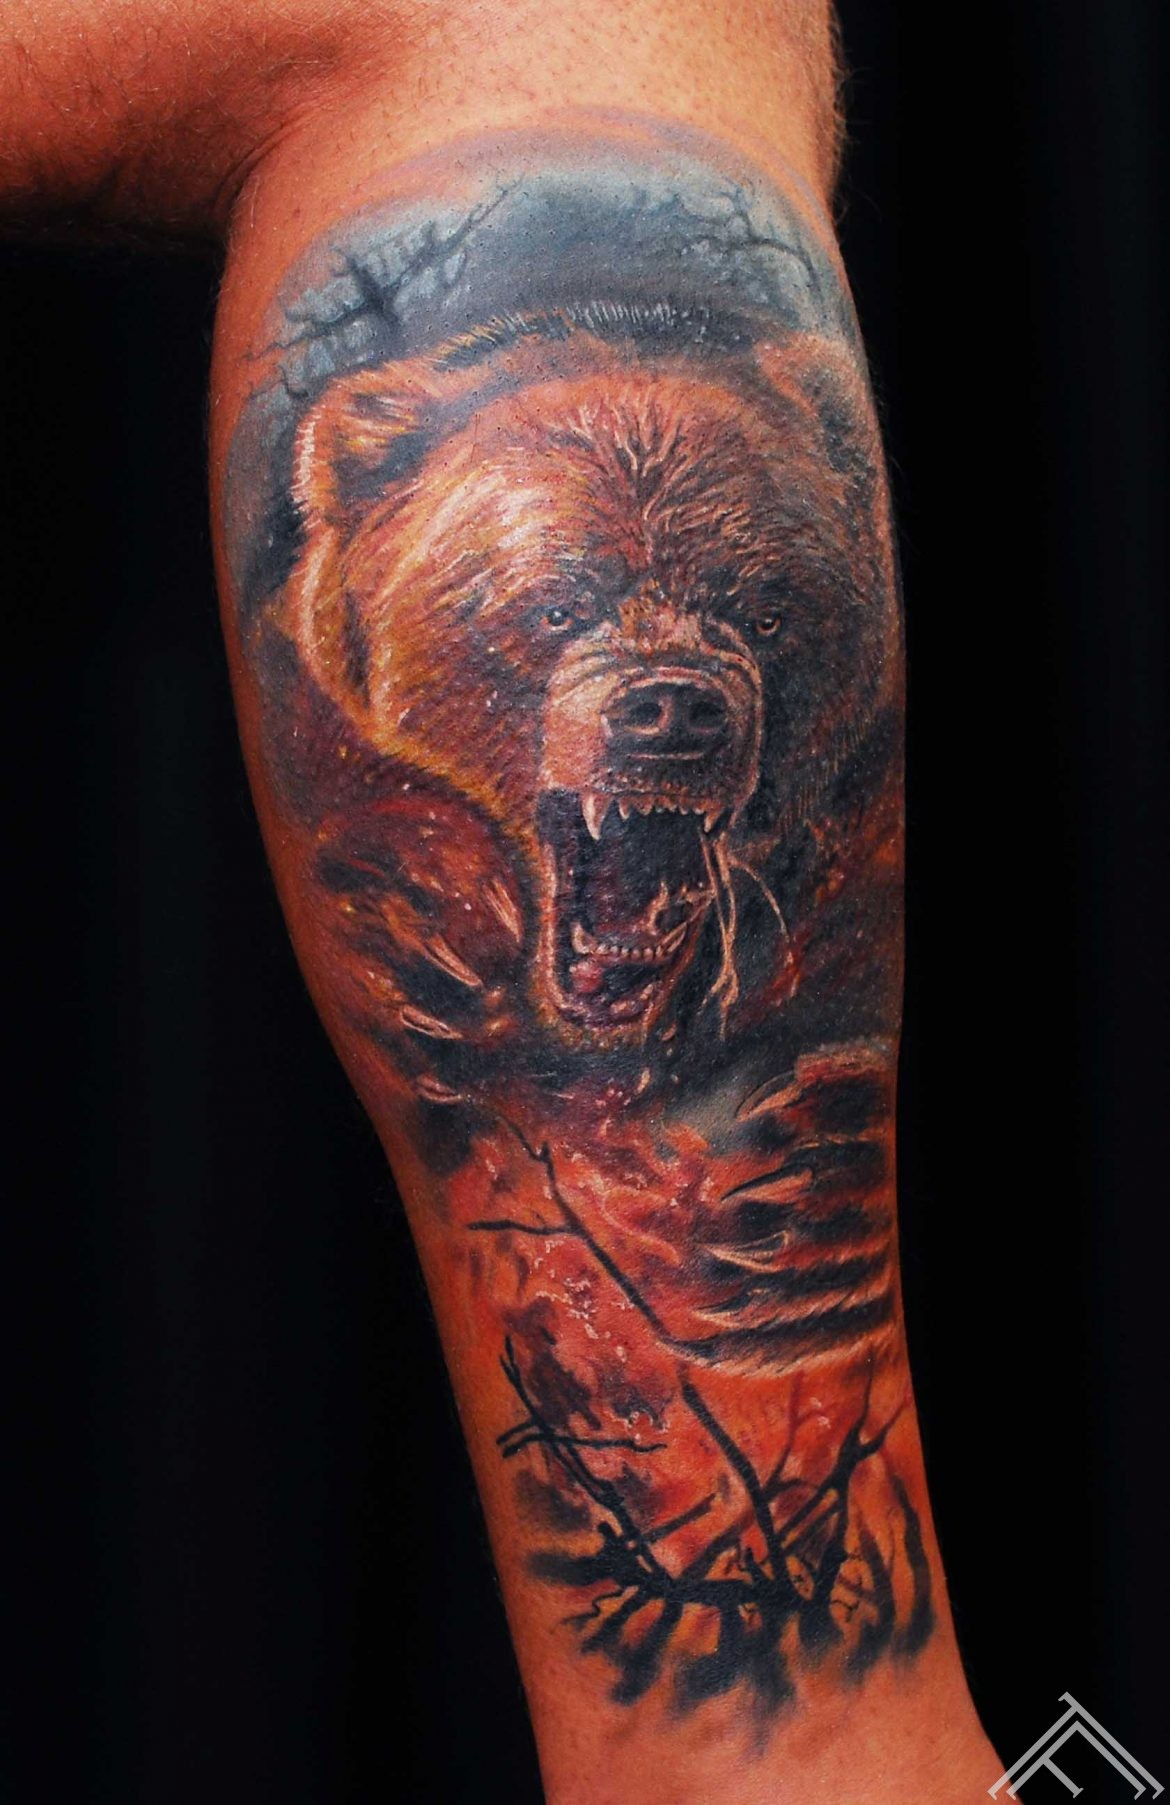 bear_fire_tattoo_tattoofrequency_tattoo